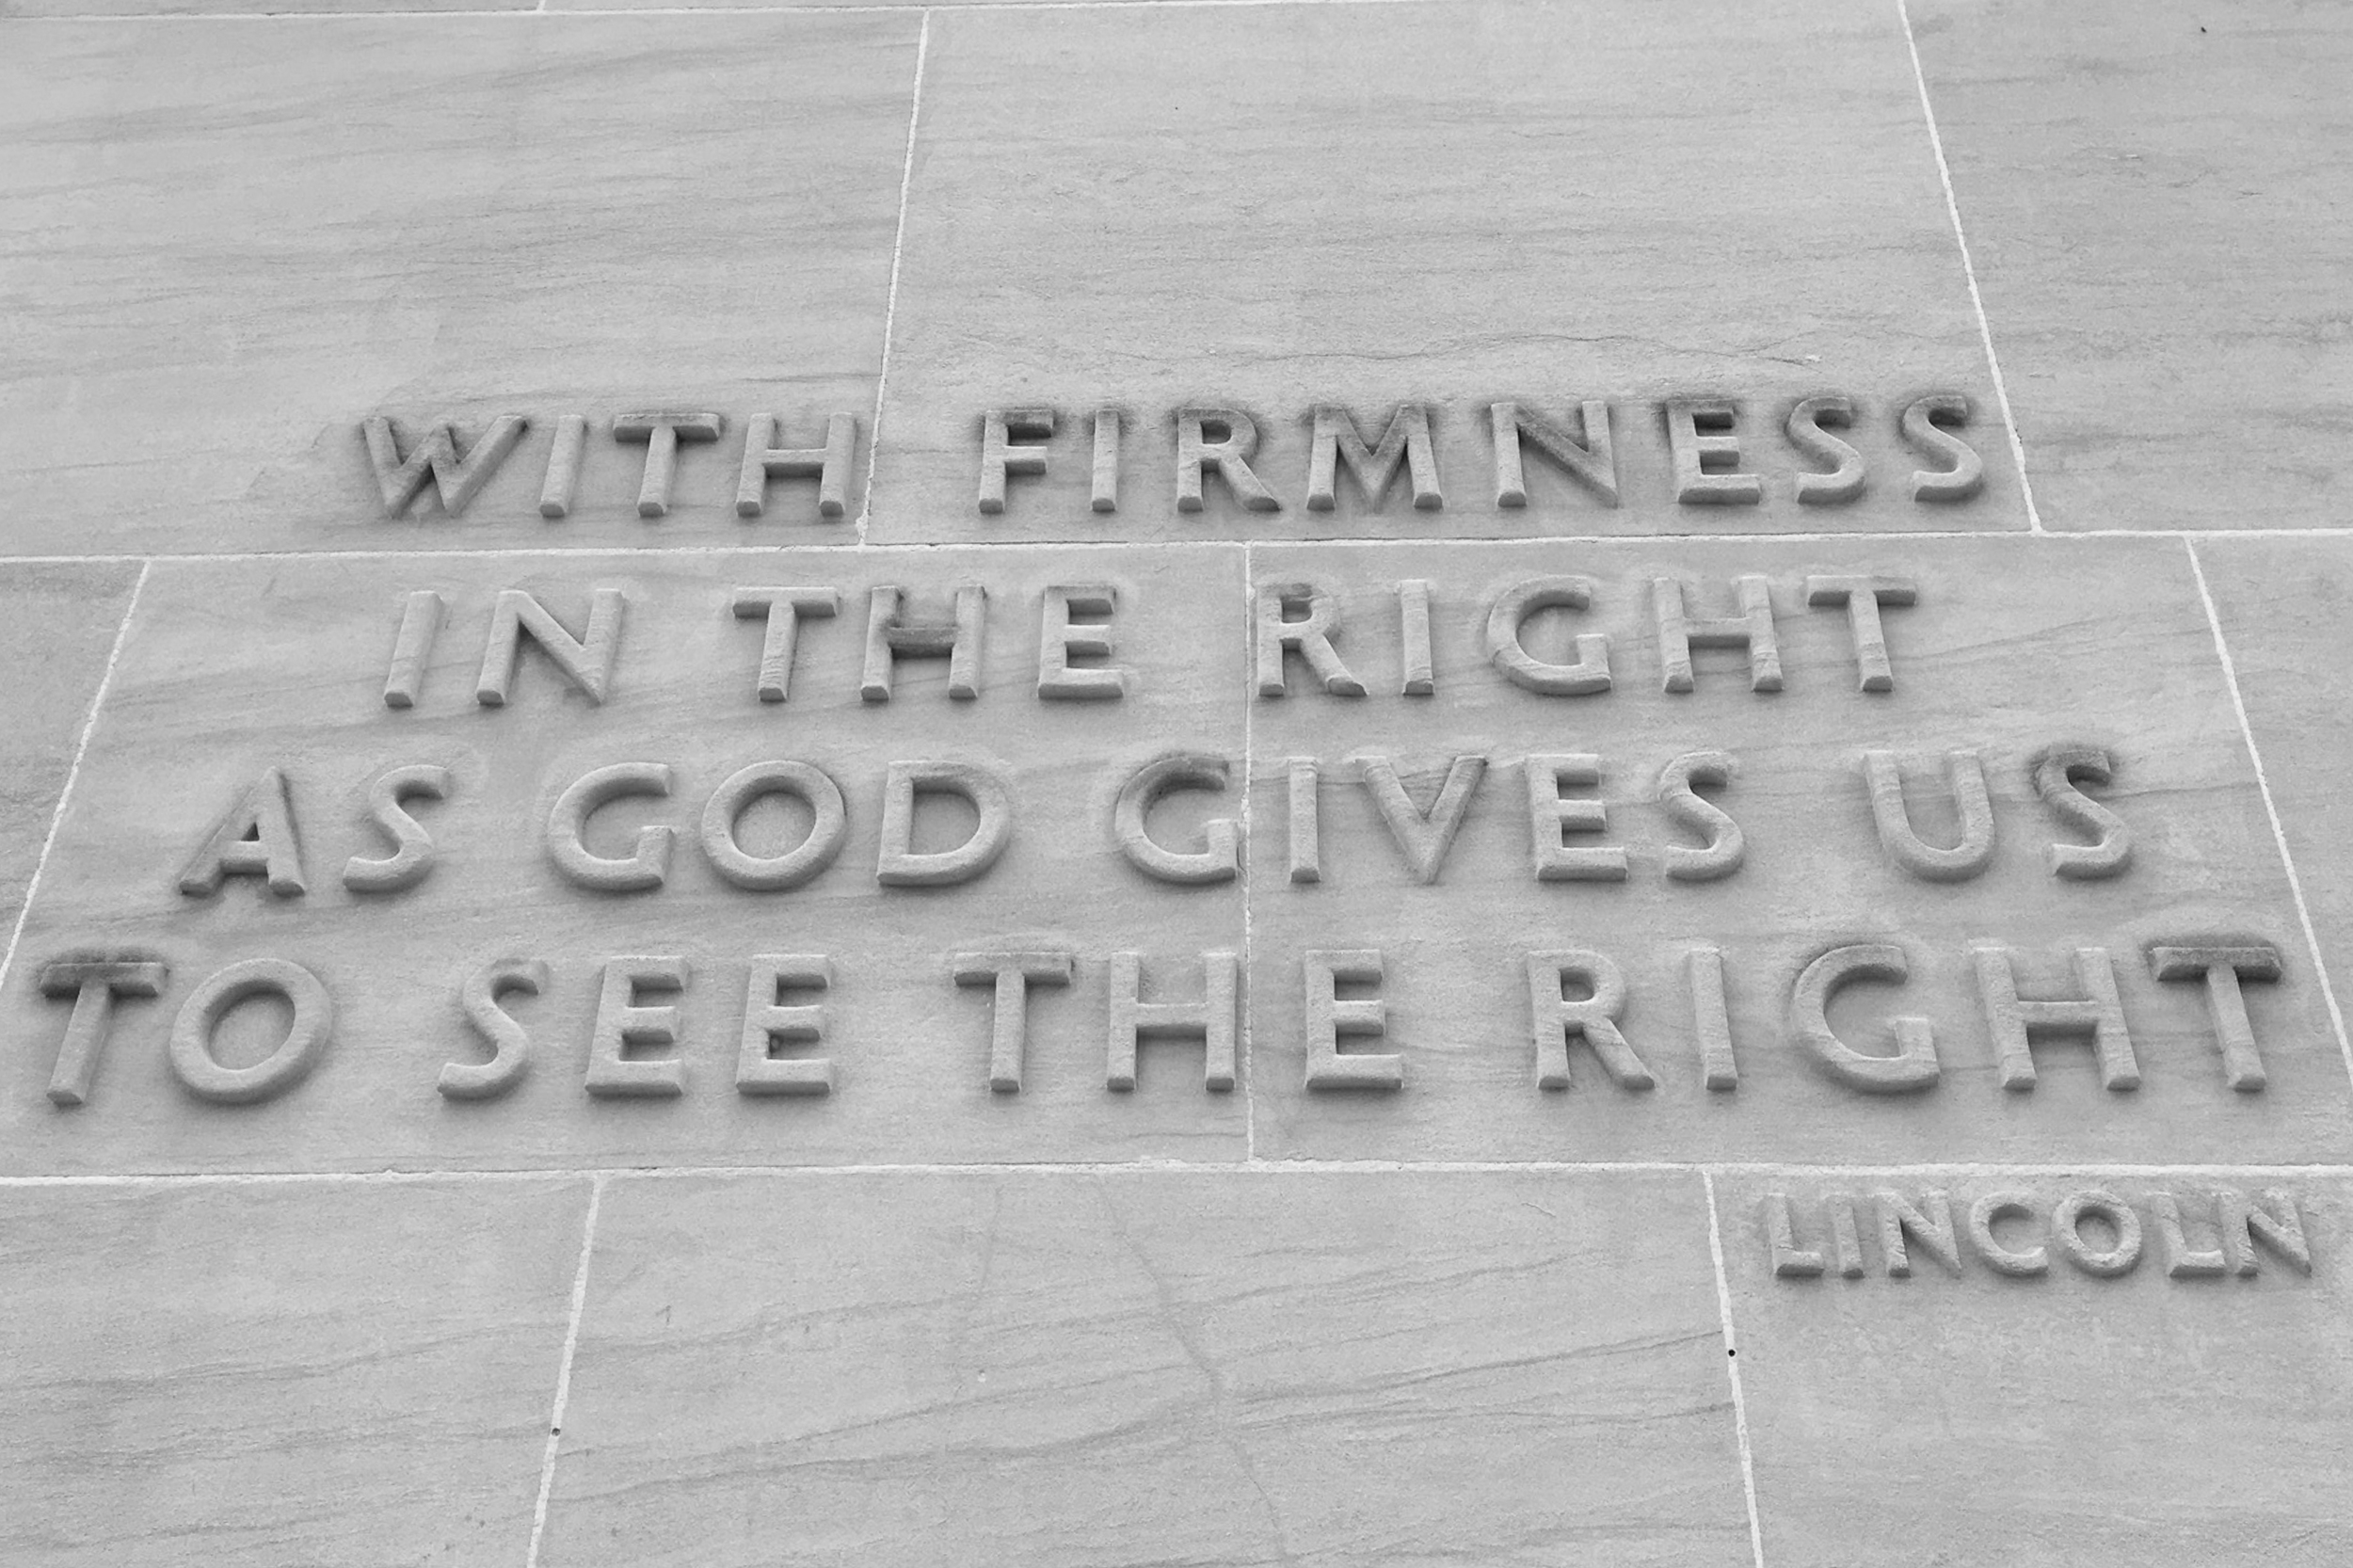 Written on the Eternal Light Peace Memorial - words to think on.